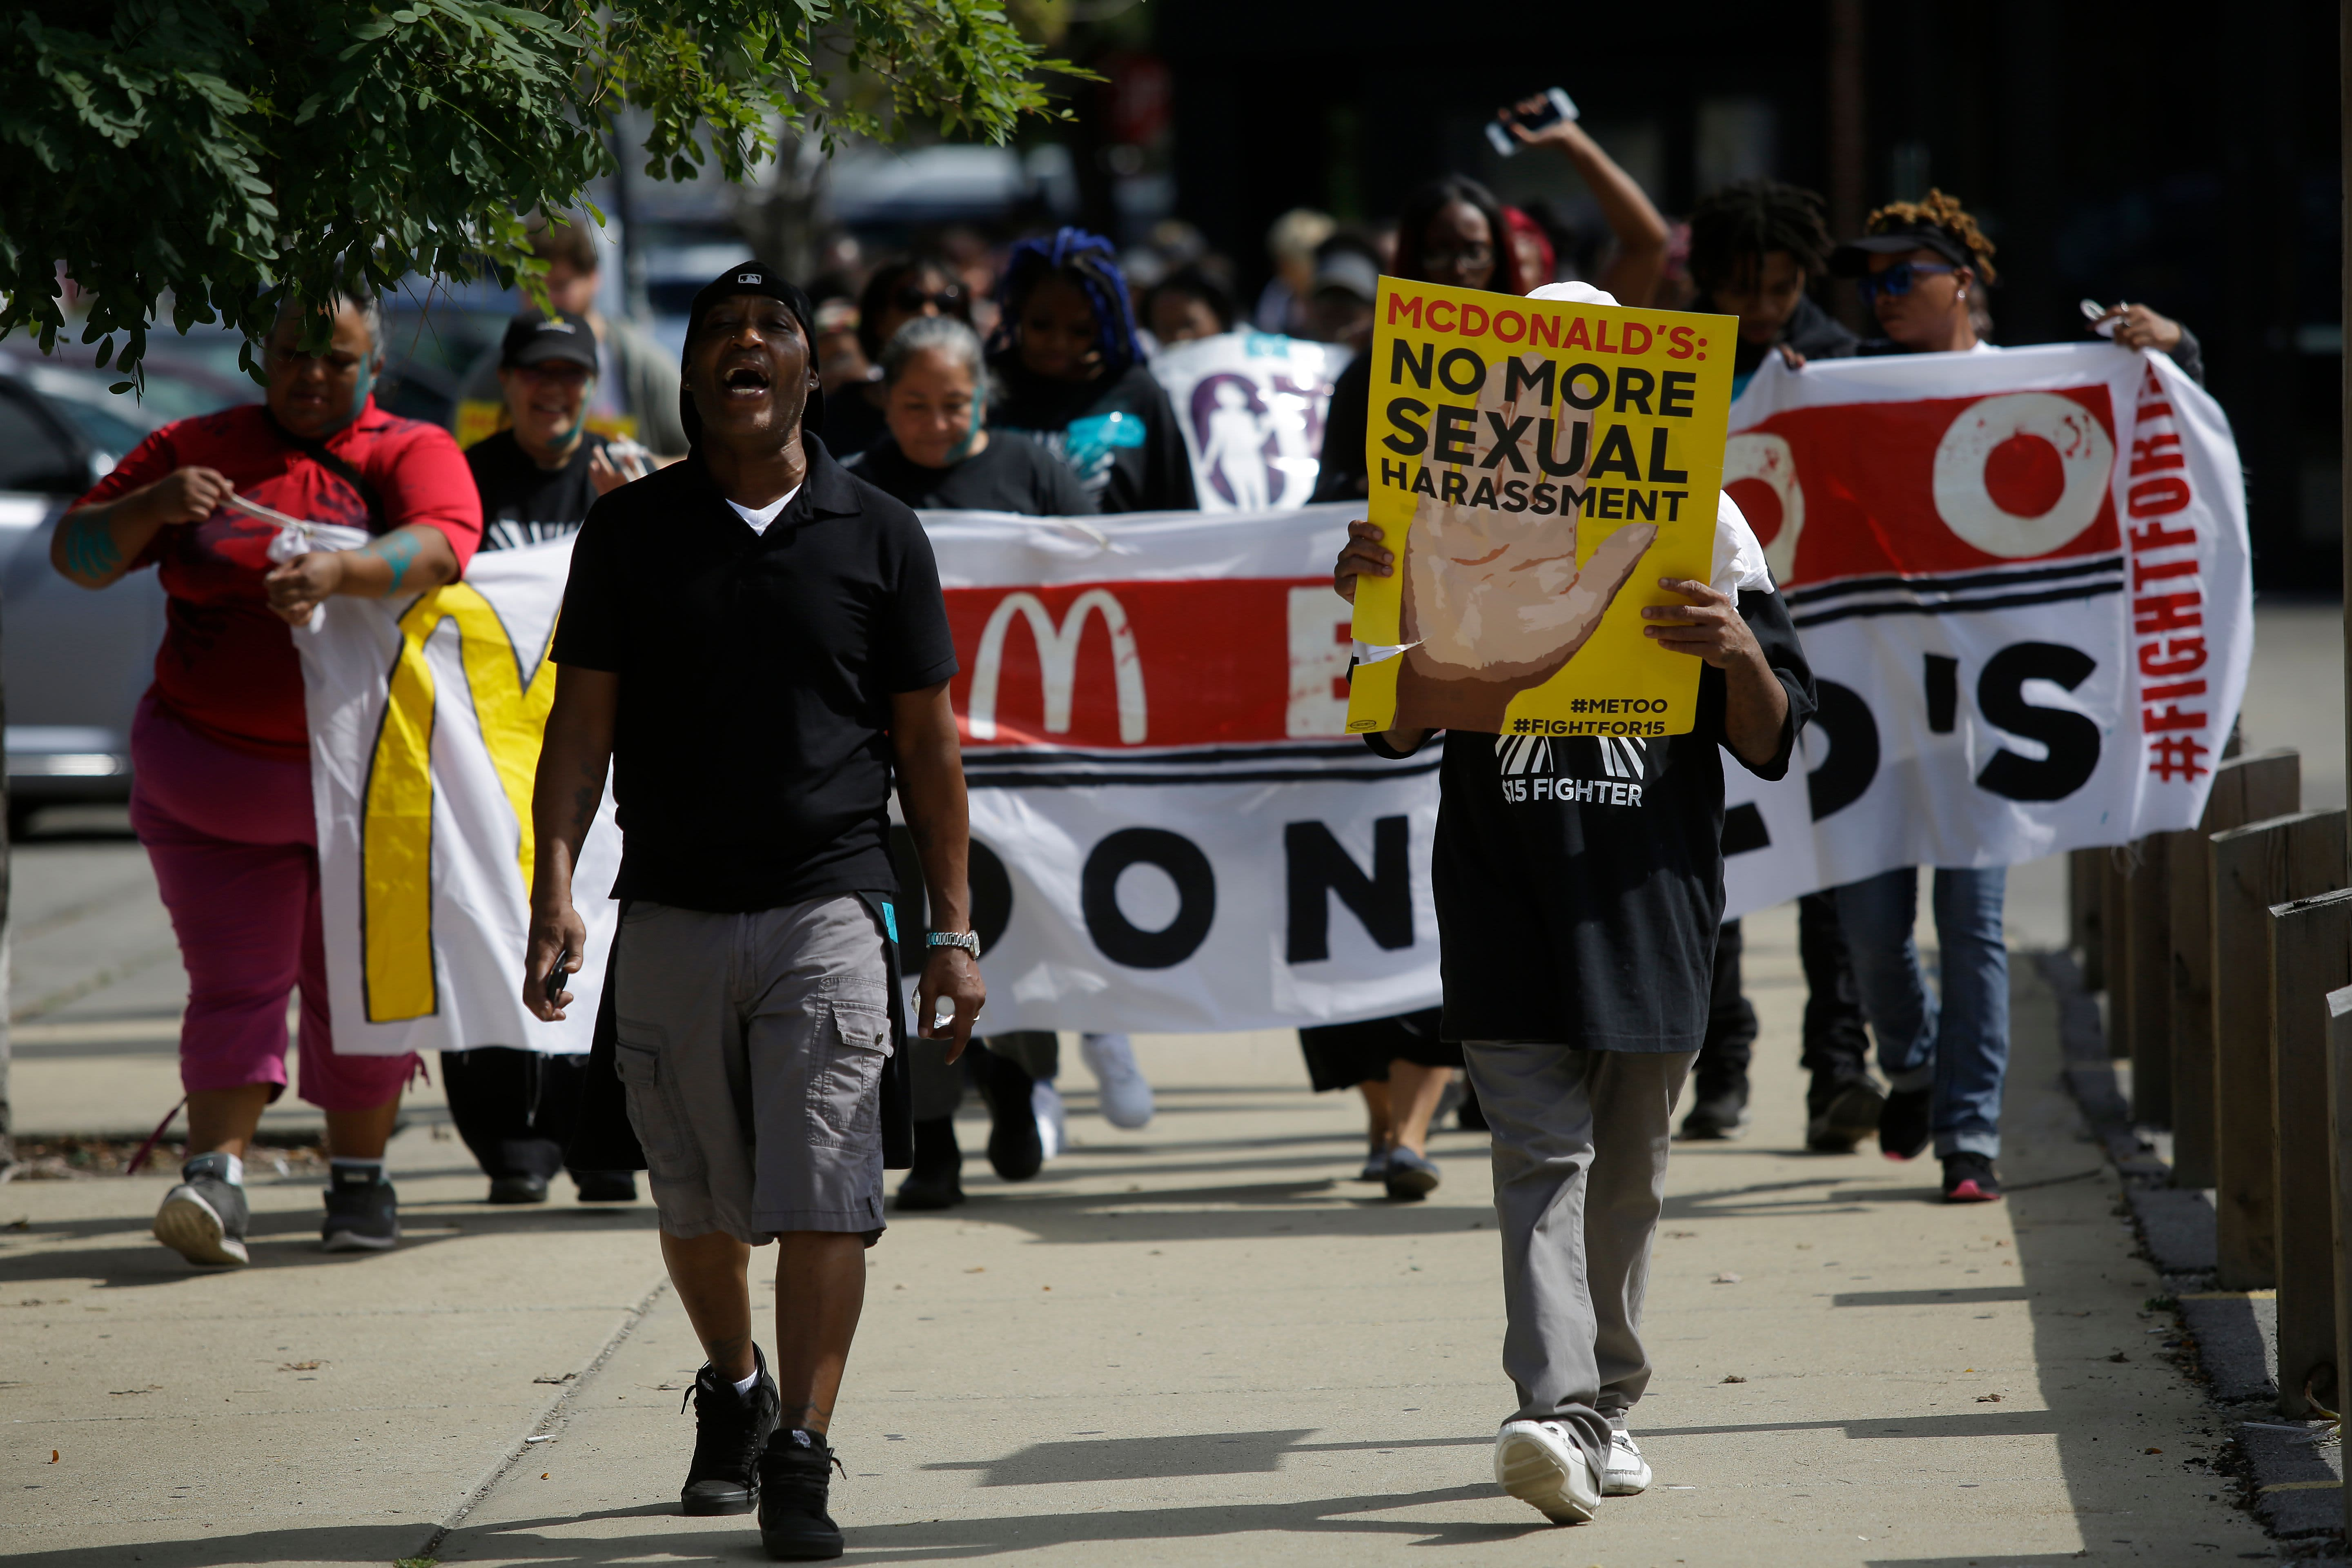 McDonald's faces new complaints related to handling of sexual harassment cases